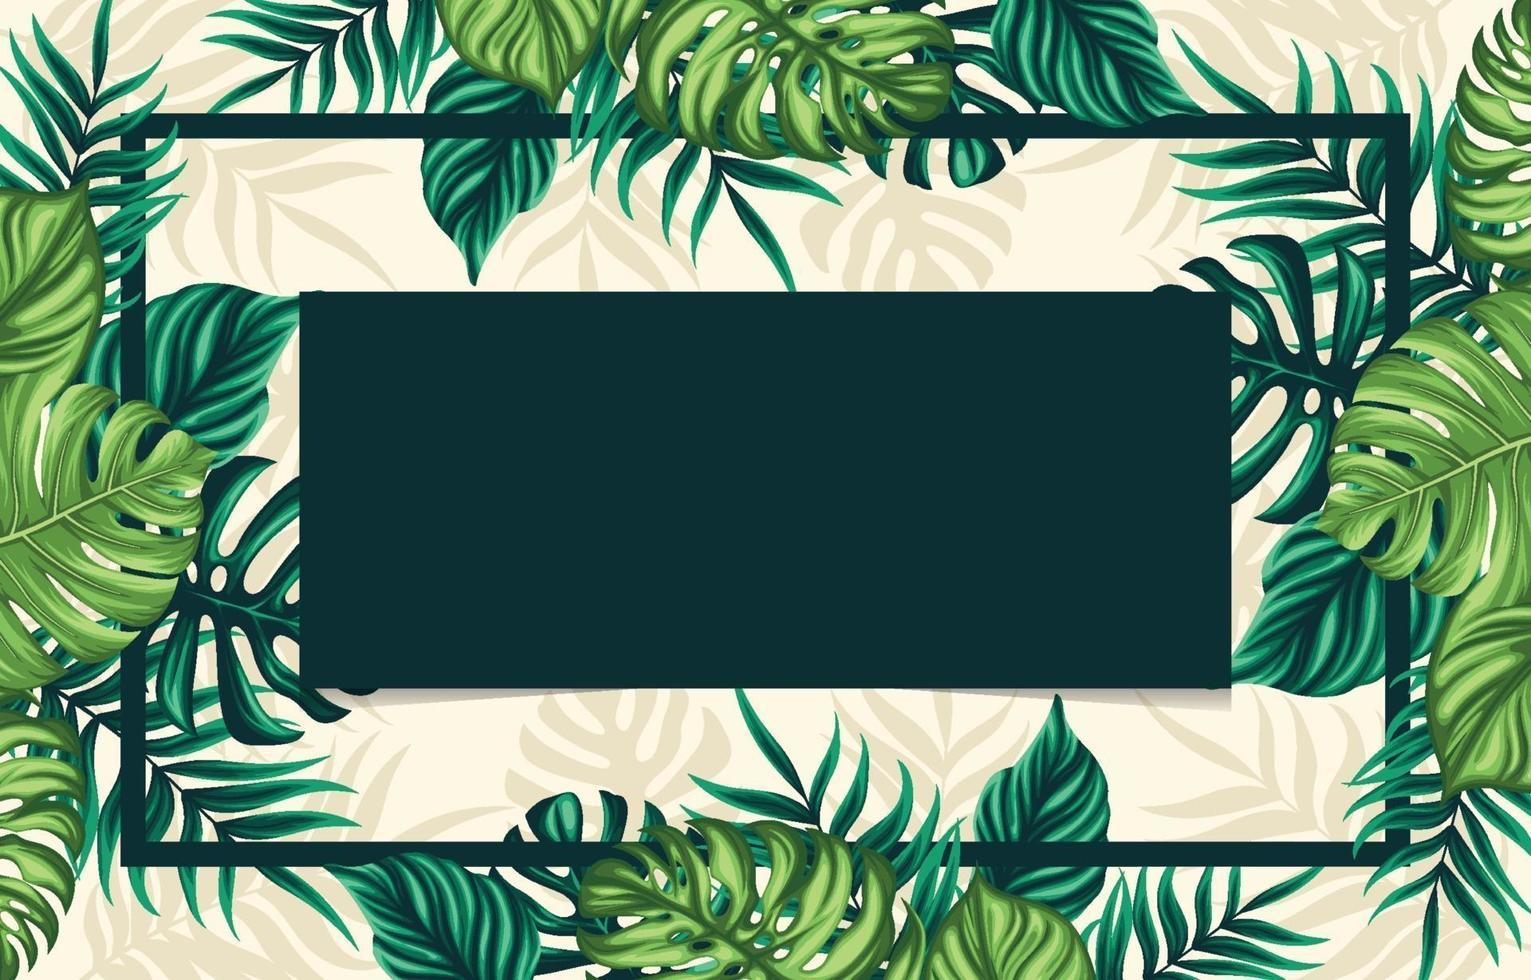 Tropical Floral Leaves Background vector